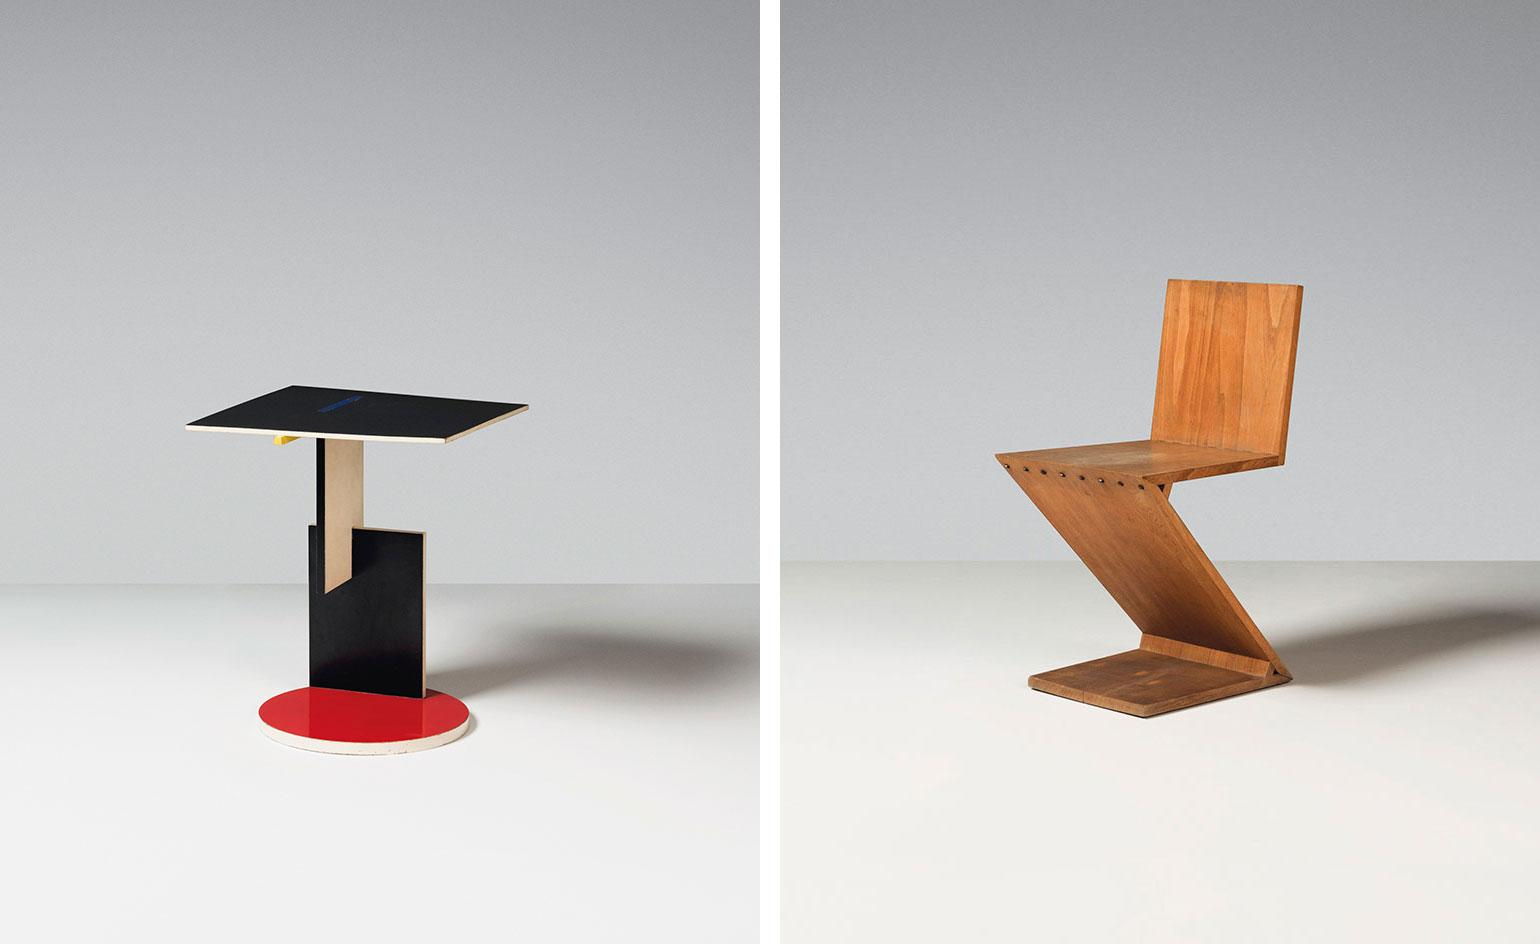 Housden's collection of Gerrit Rietveld's furniture goes on sale at Christie's